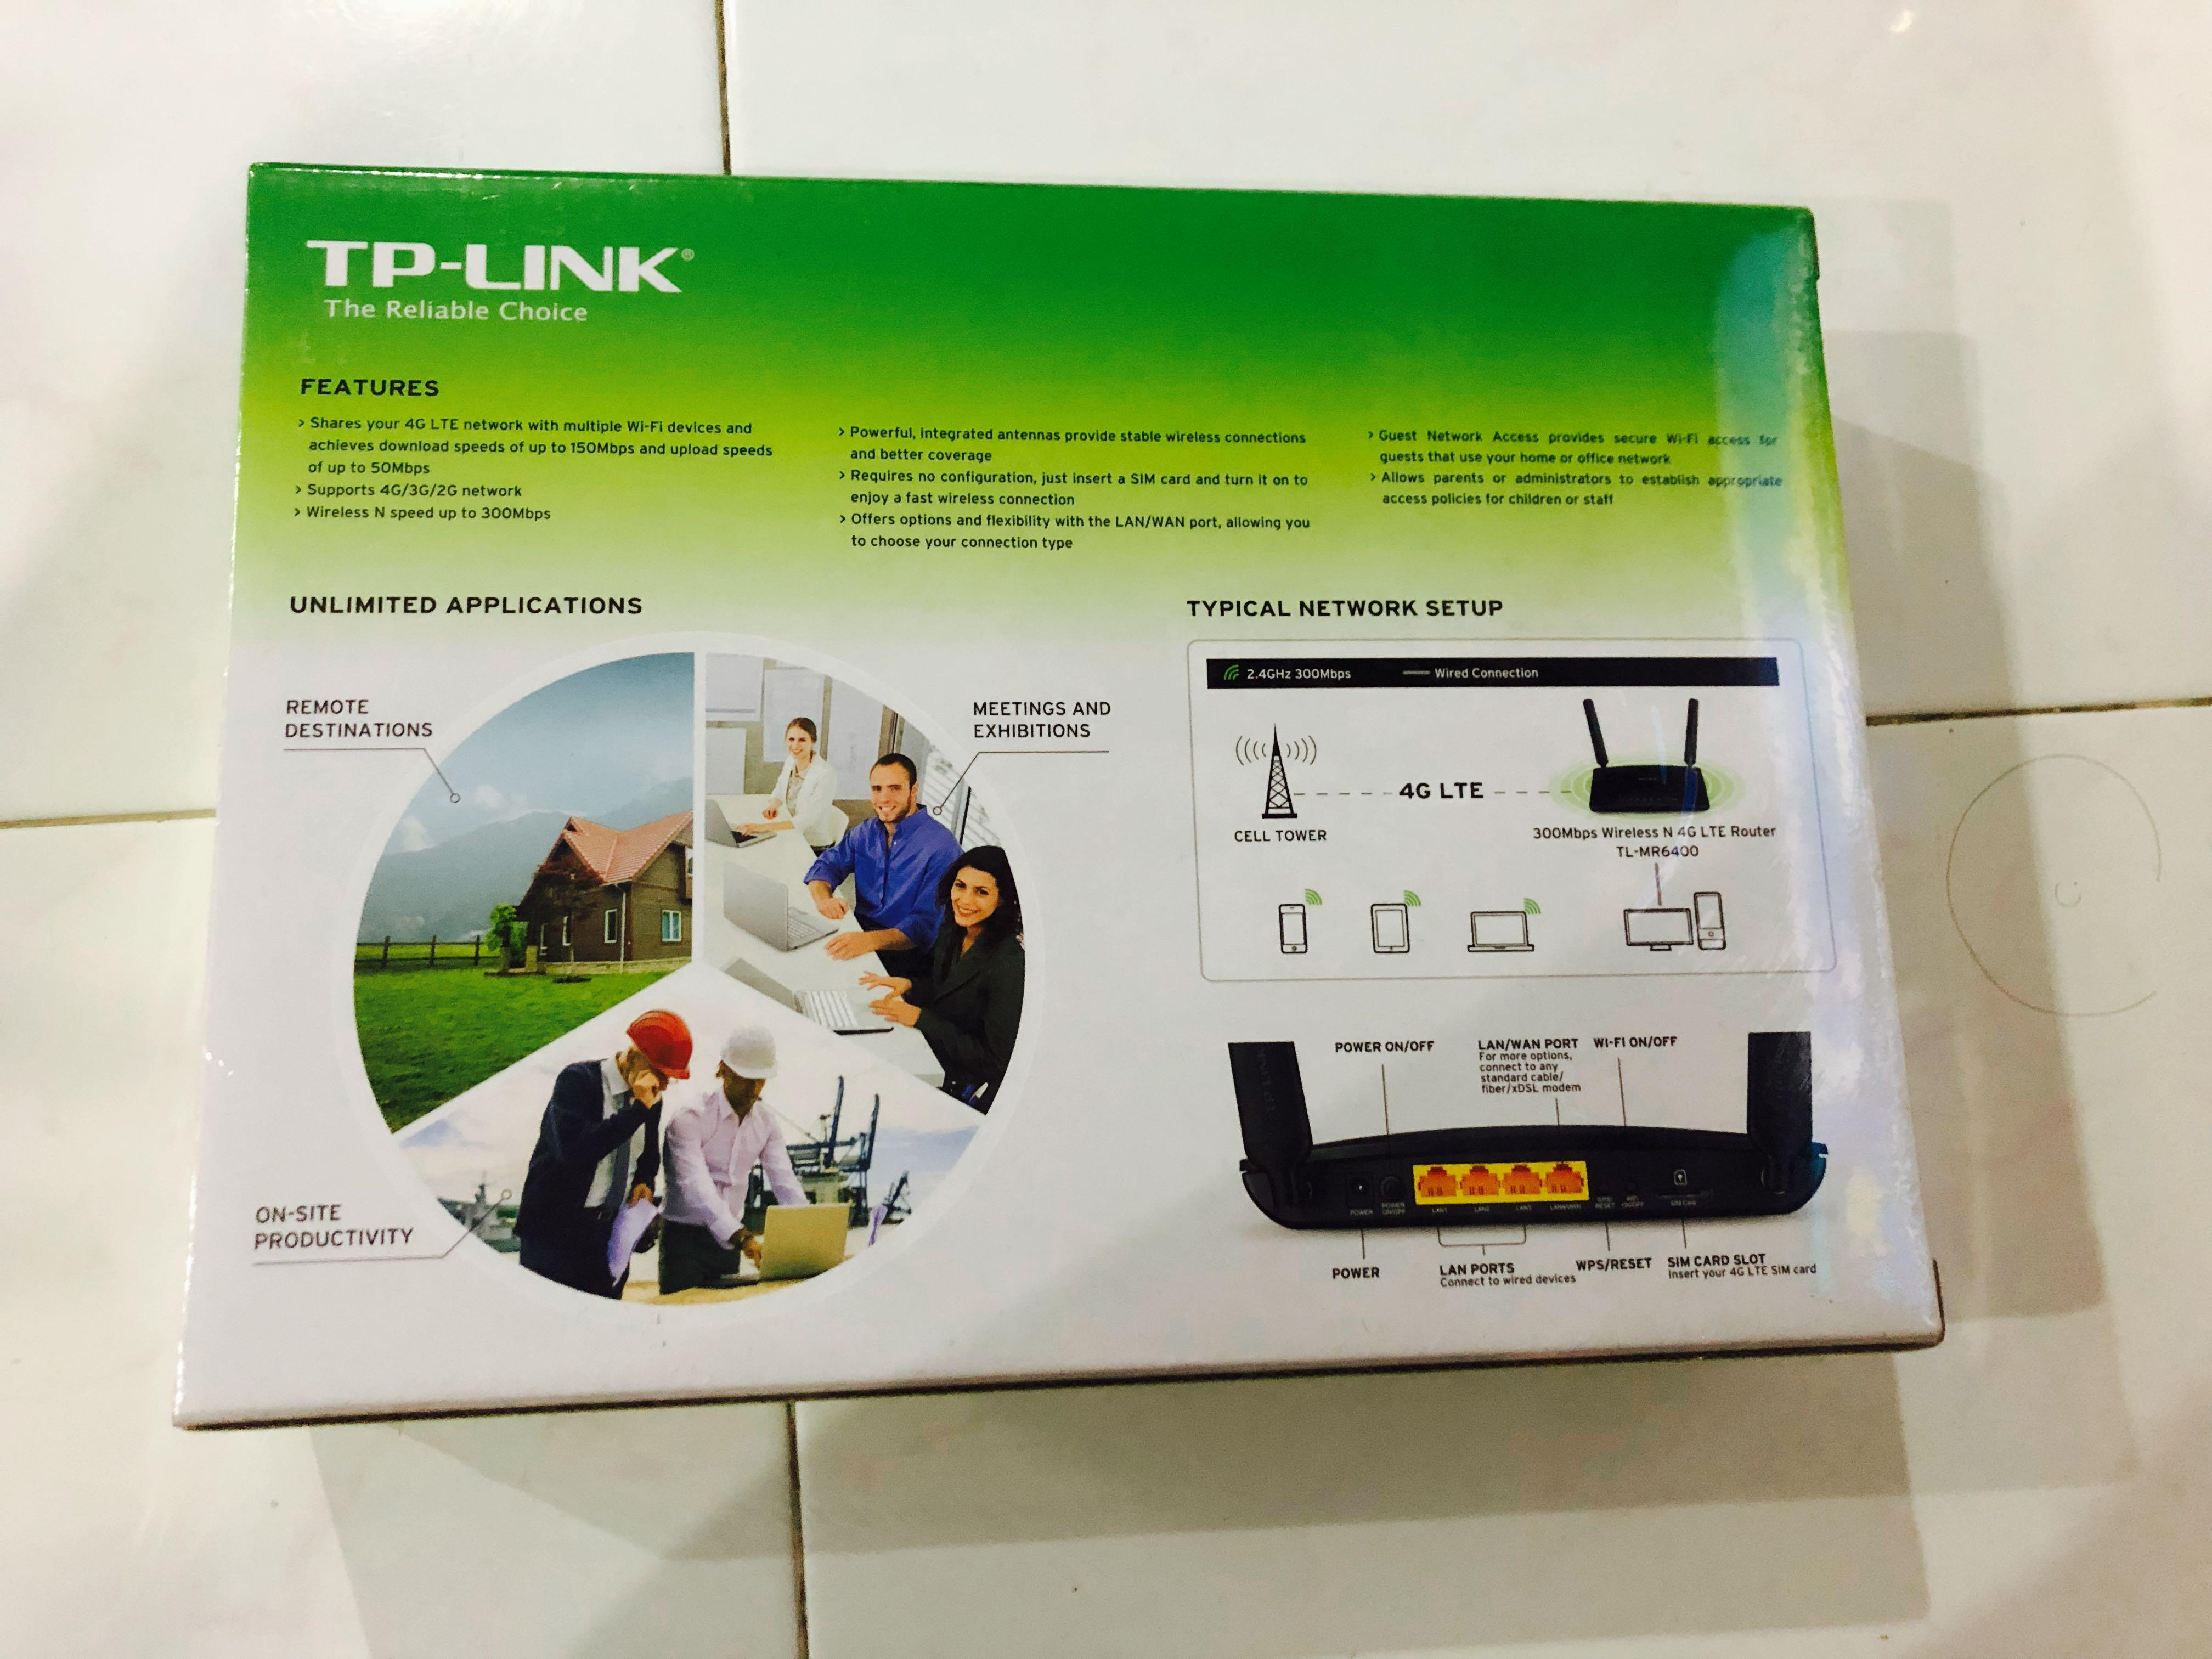 TP-Link 300Mbps Wireless N 4G LTE Router, Electronics